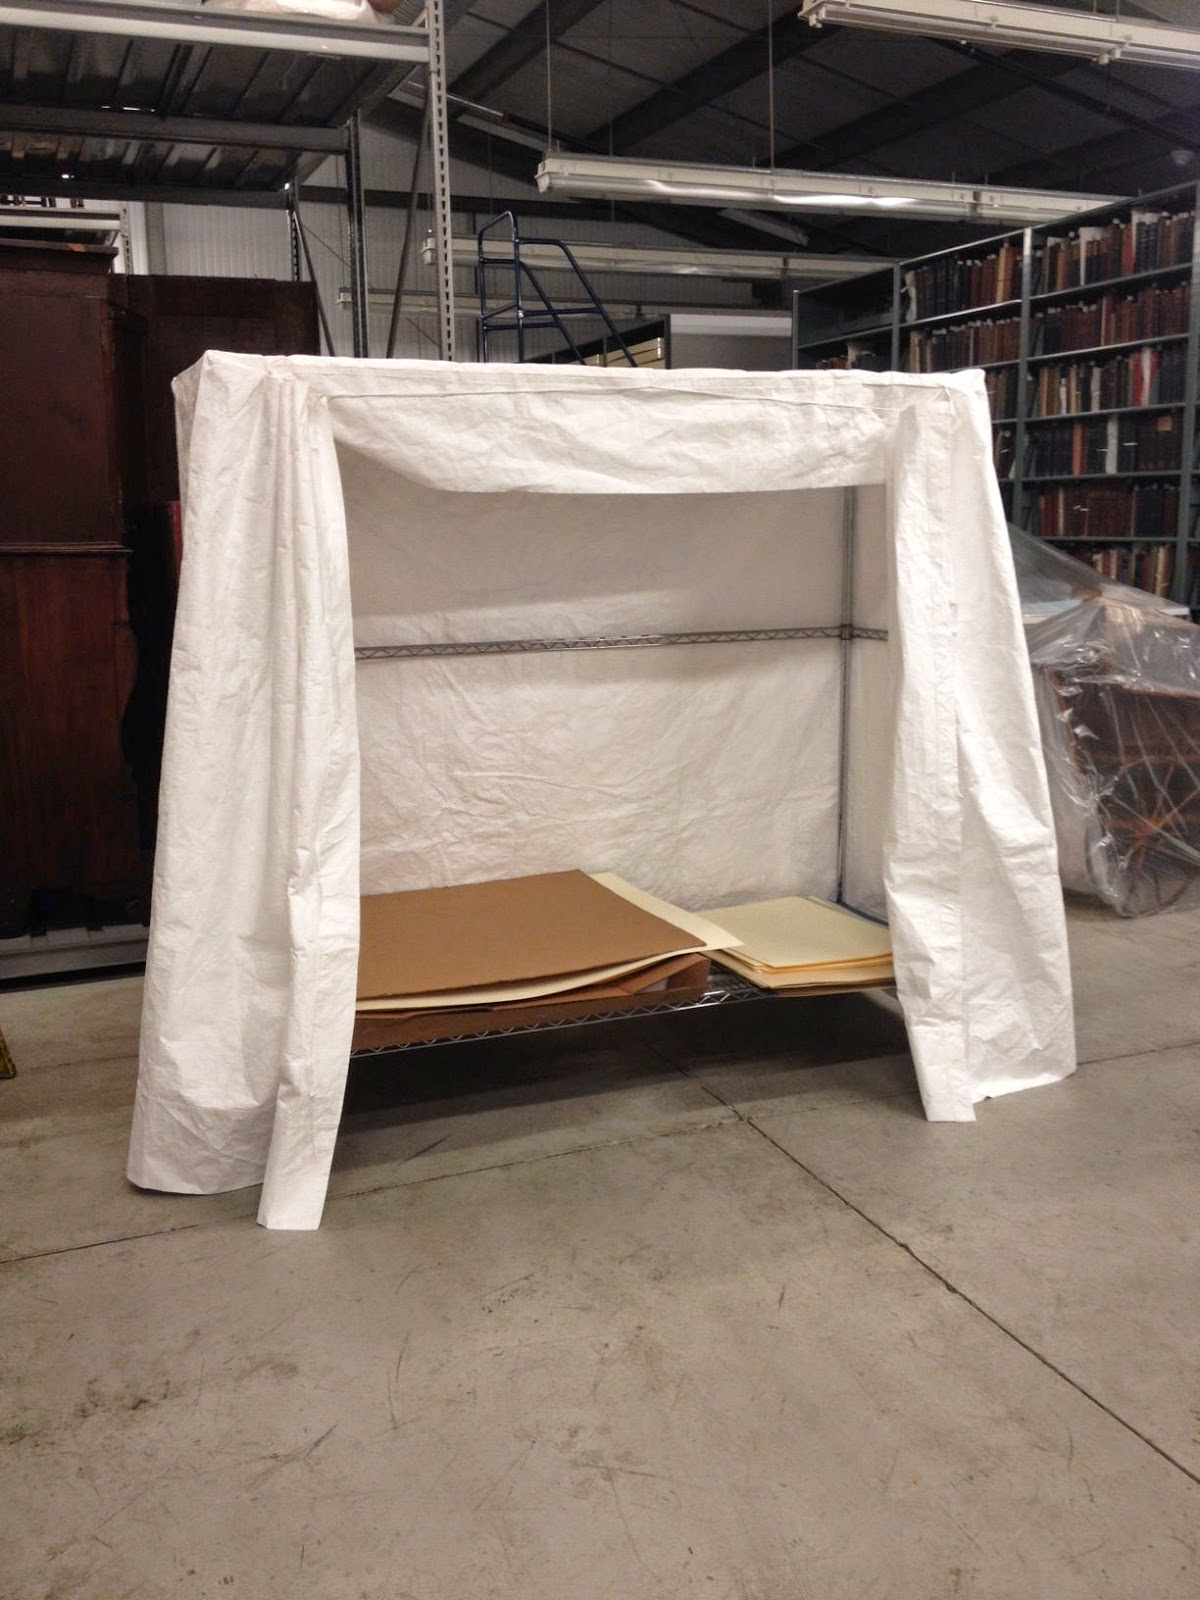 Custom made tyvek dust cover for the archival storage of historic clothing. Designed and created by Gwen Spicer of Spicer Art Conservation